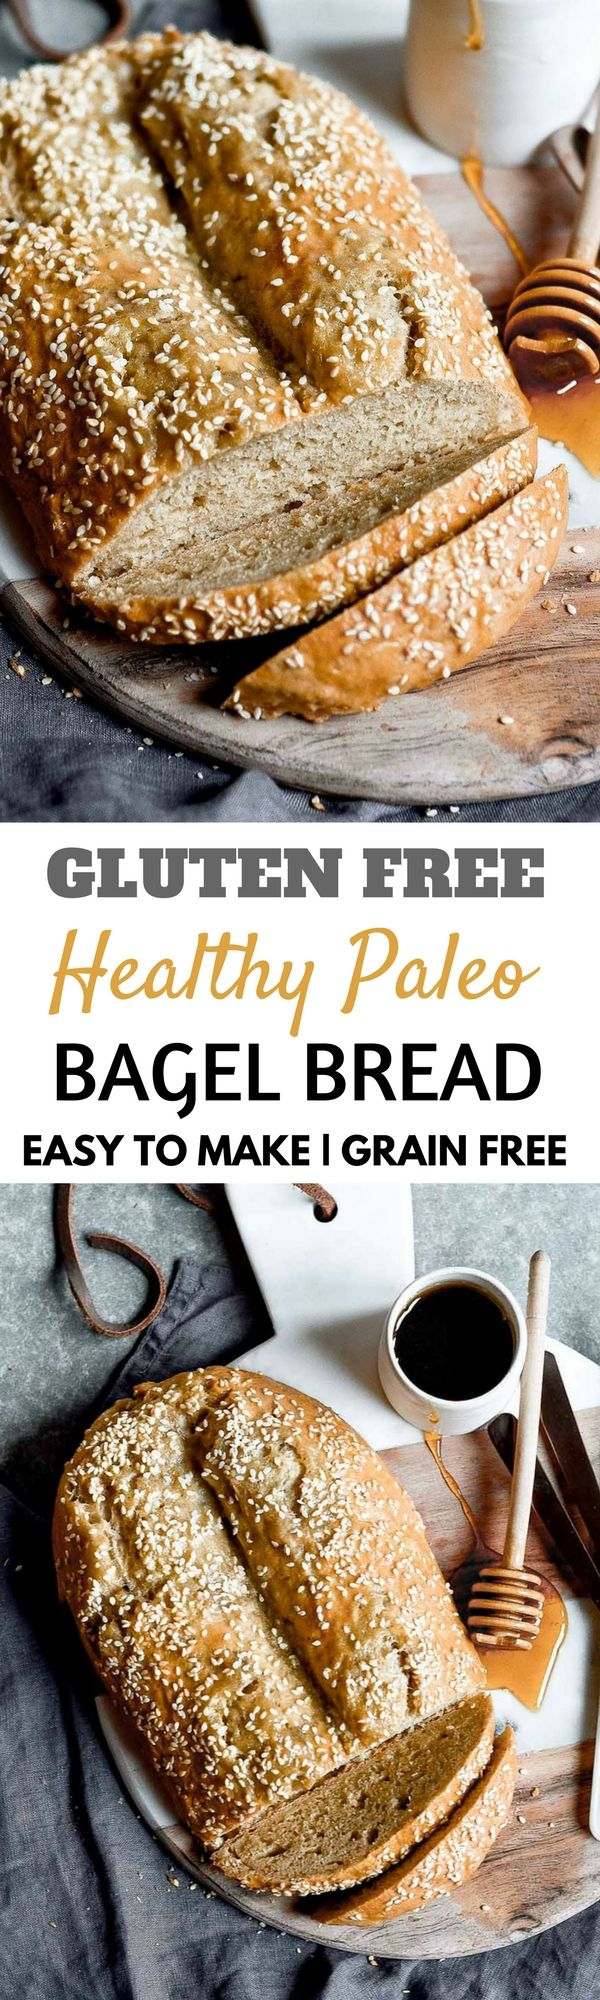 I ordered/paid for this book but have not received it   this book Healthy gluten free paleo bagel bread. An Easy to make grain free bread that tastes like a bagel!